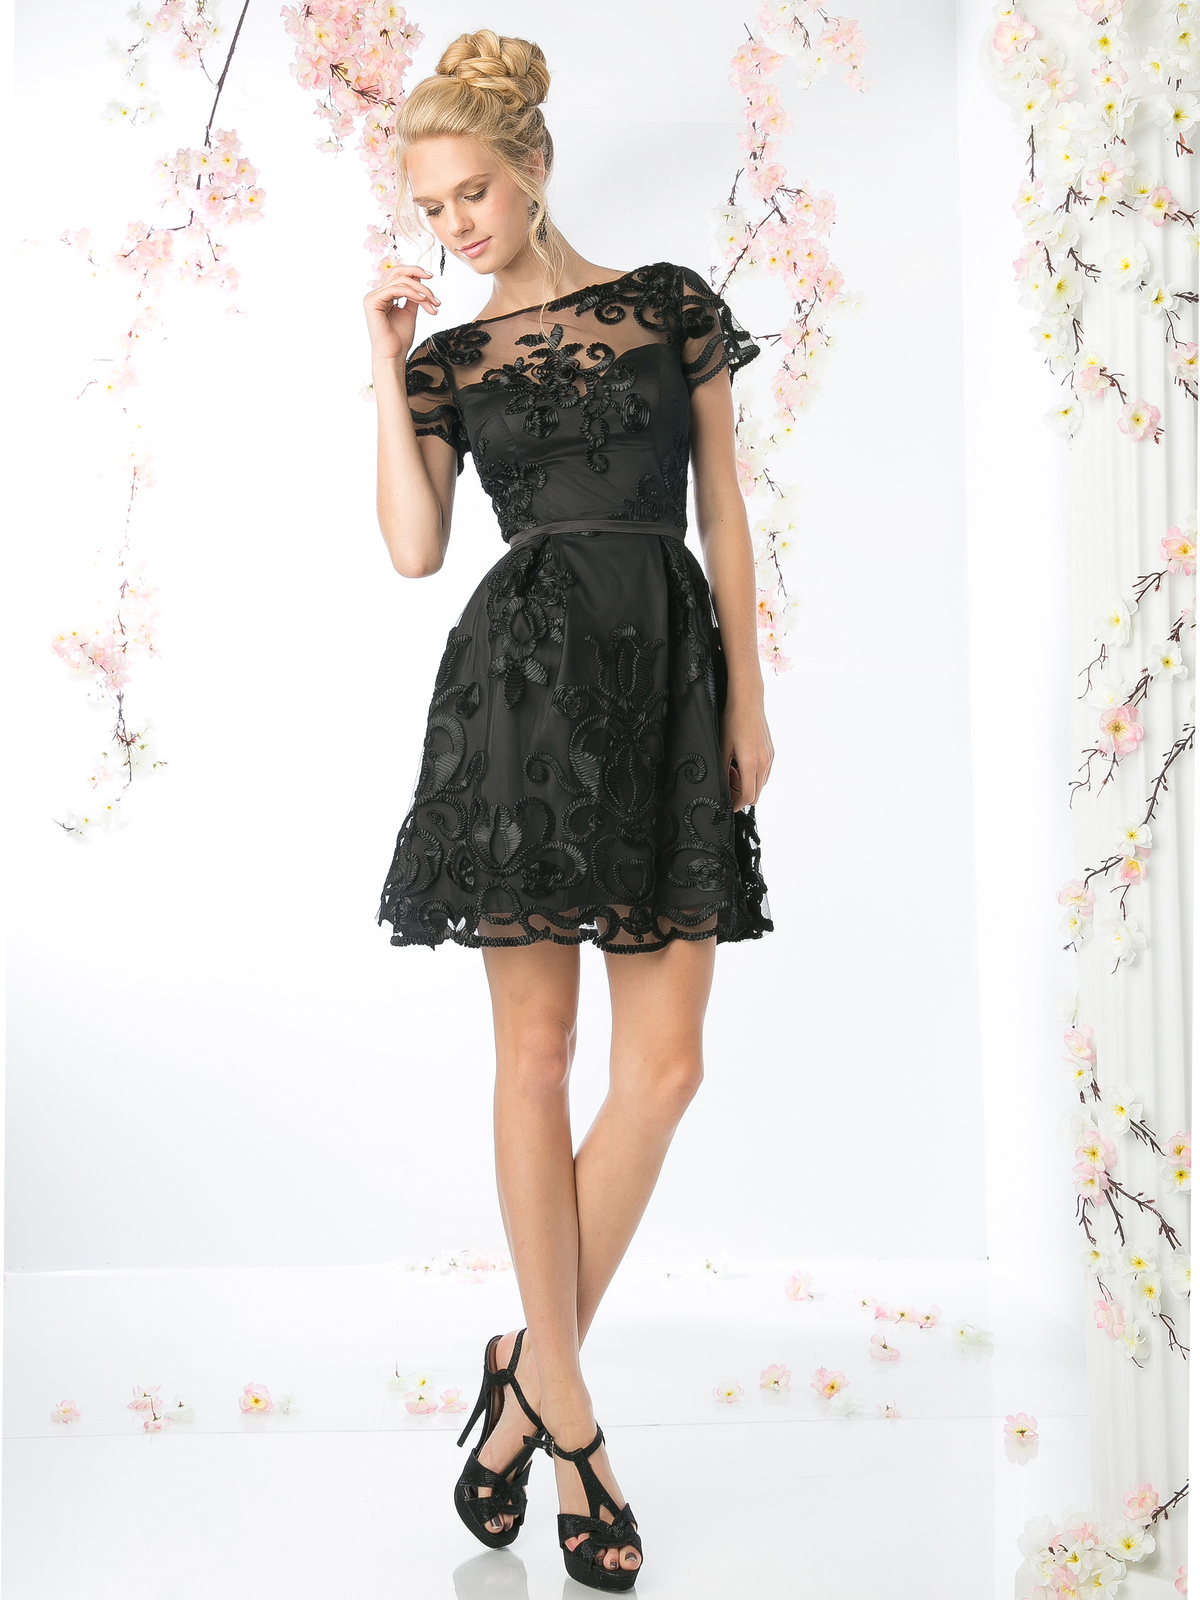 Short Sleeve Lace Overlay Cocktail Dress | Sung Boutique L.A.